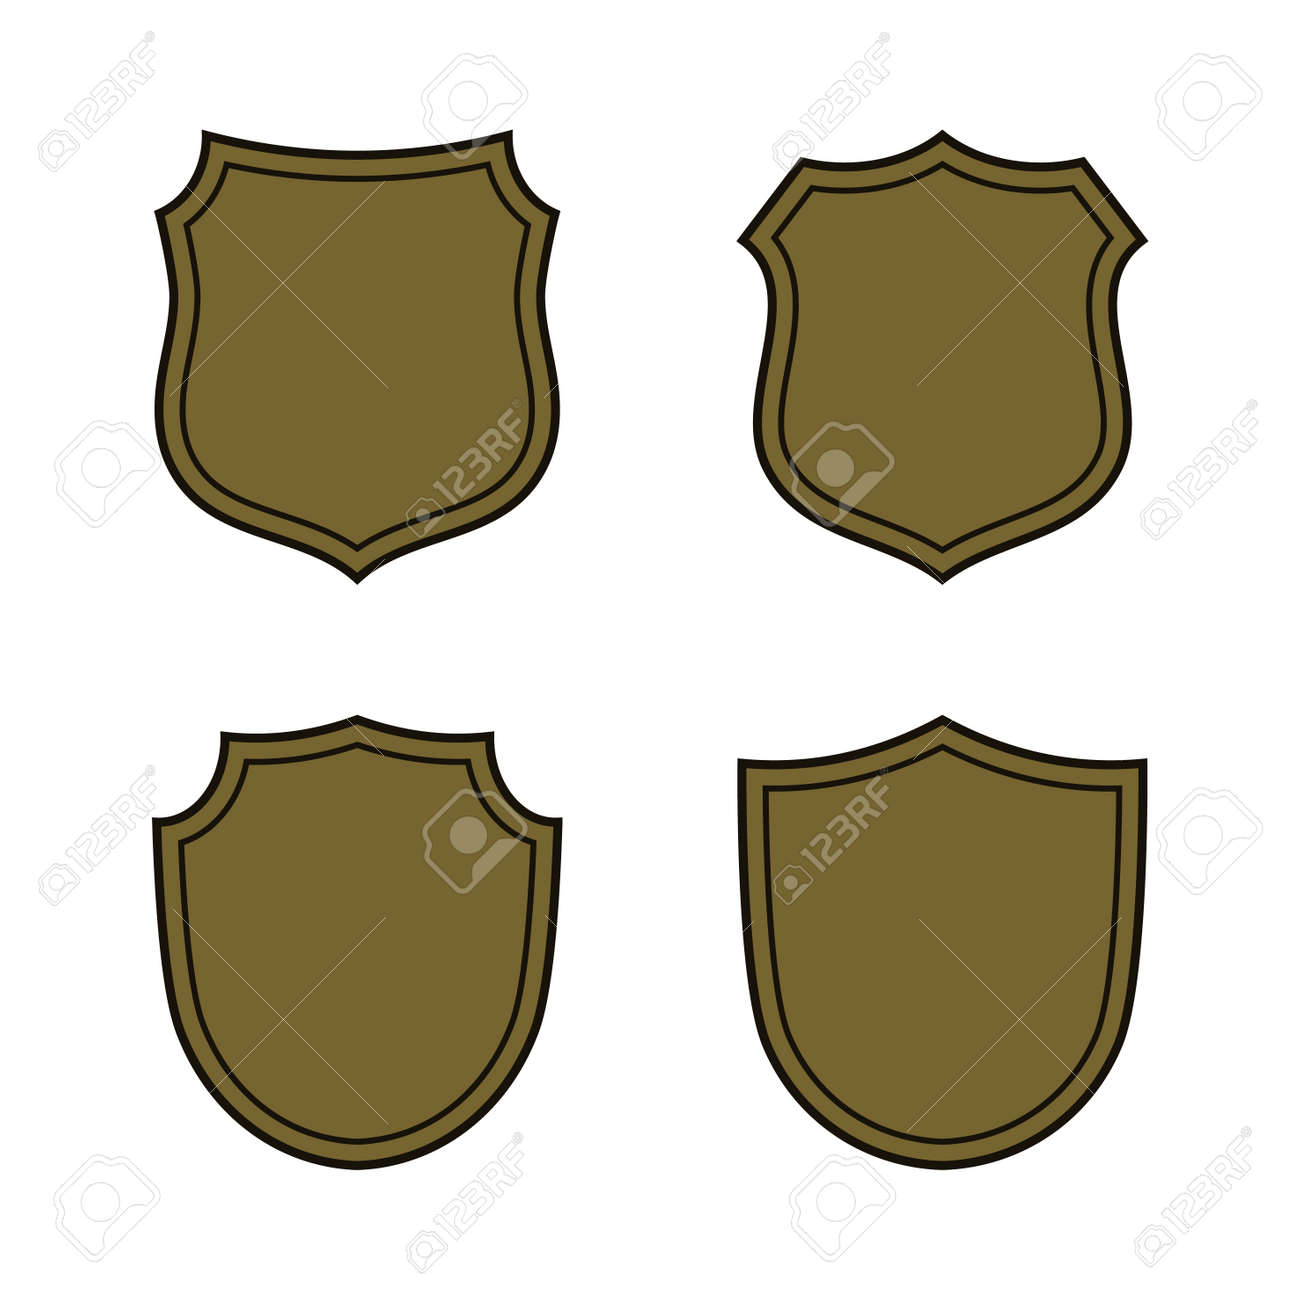 Bronze element symbol image collections symbol and sign ideas shield shape bronze icons set simple silhouette flat logo on shield shape bronze icons set simple urtaz Choice Image